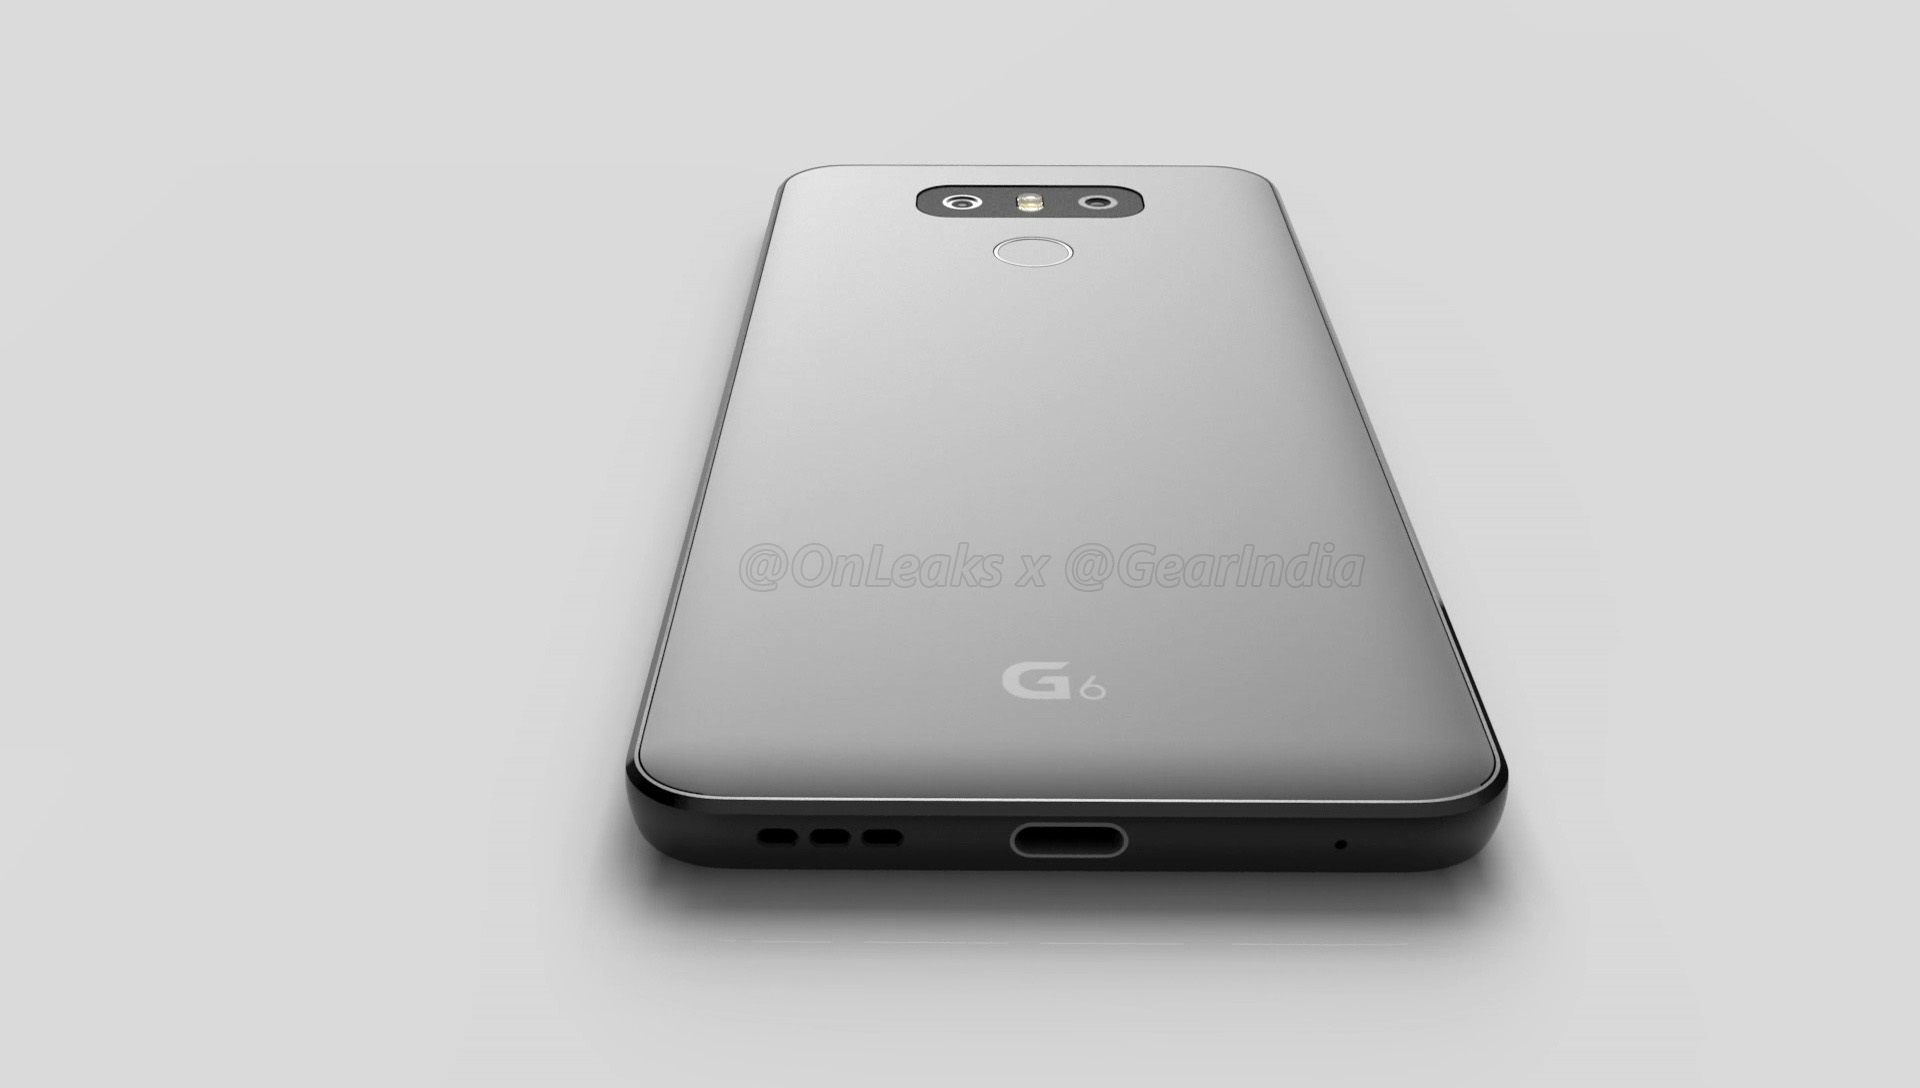 Renders-of-LG-G6-based-on-factory-CAD-images 7.jpg